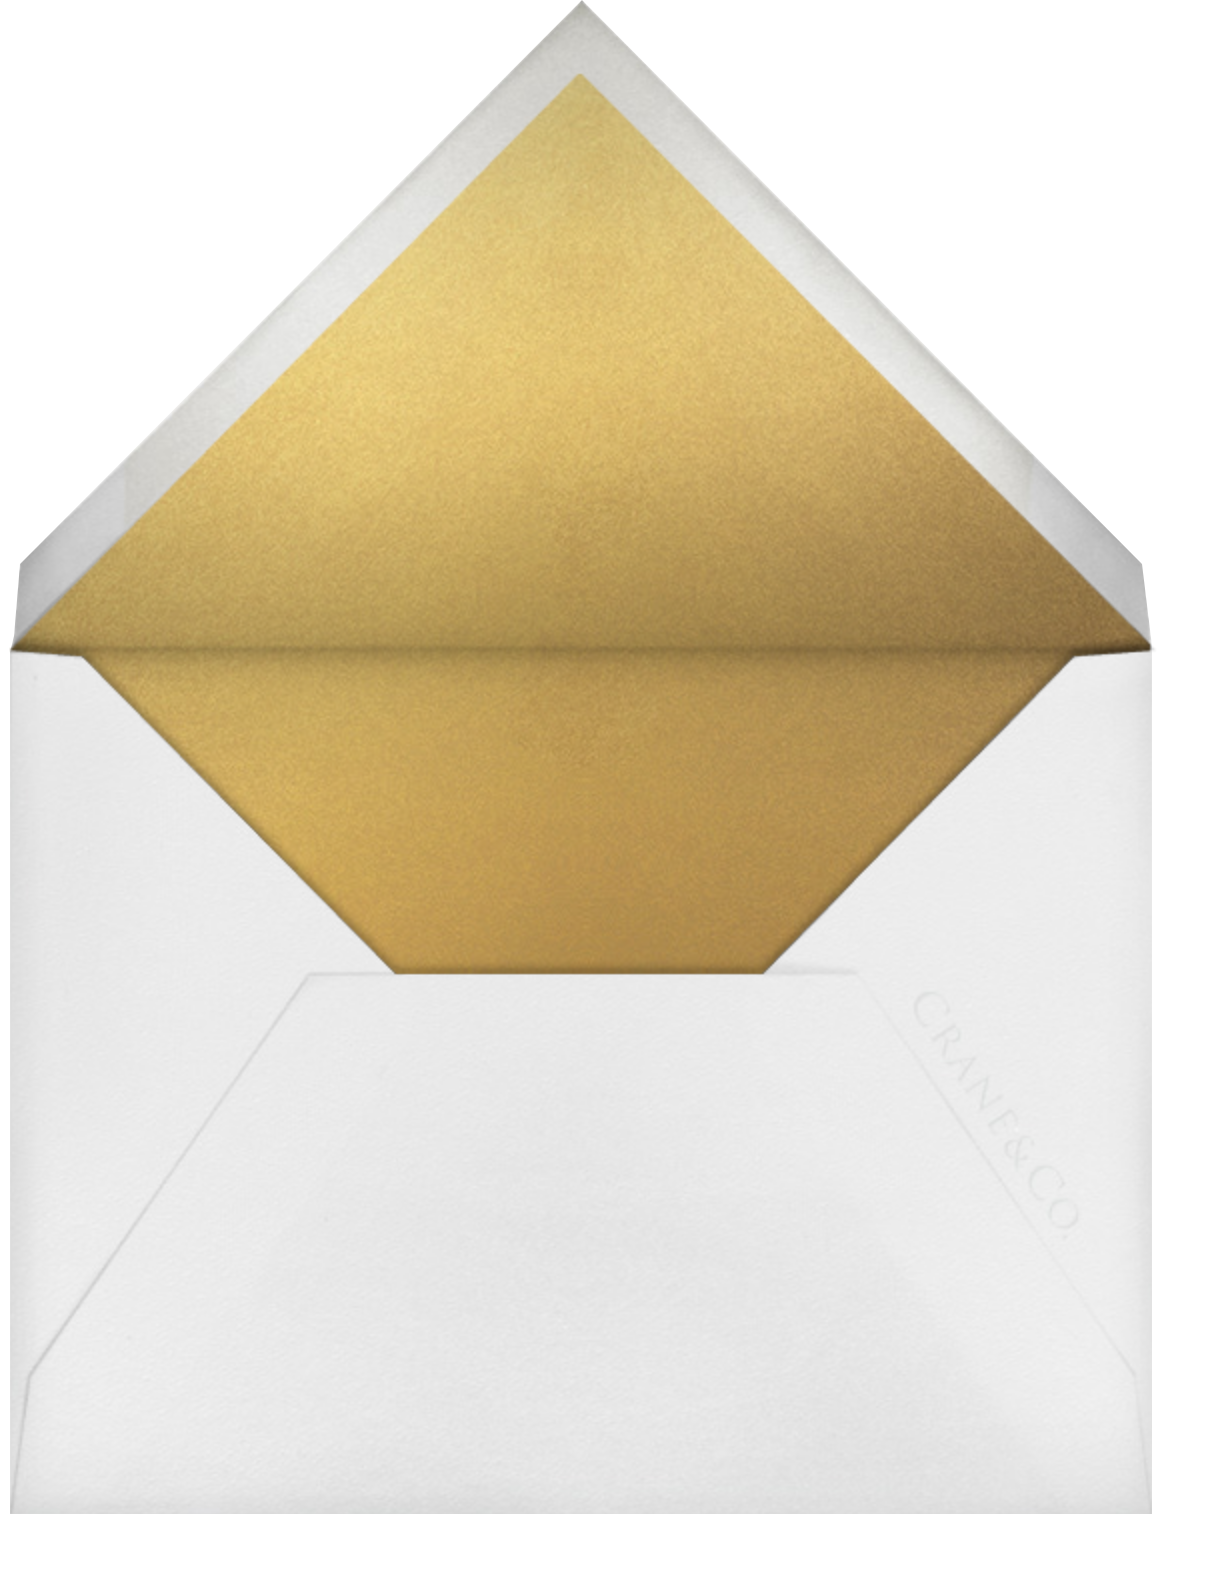 Collins Avenue (Thank You) - Medium Gold - Crane & Co. - Personalized stationery - envelope back